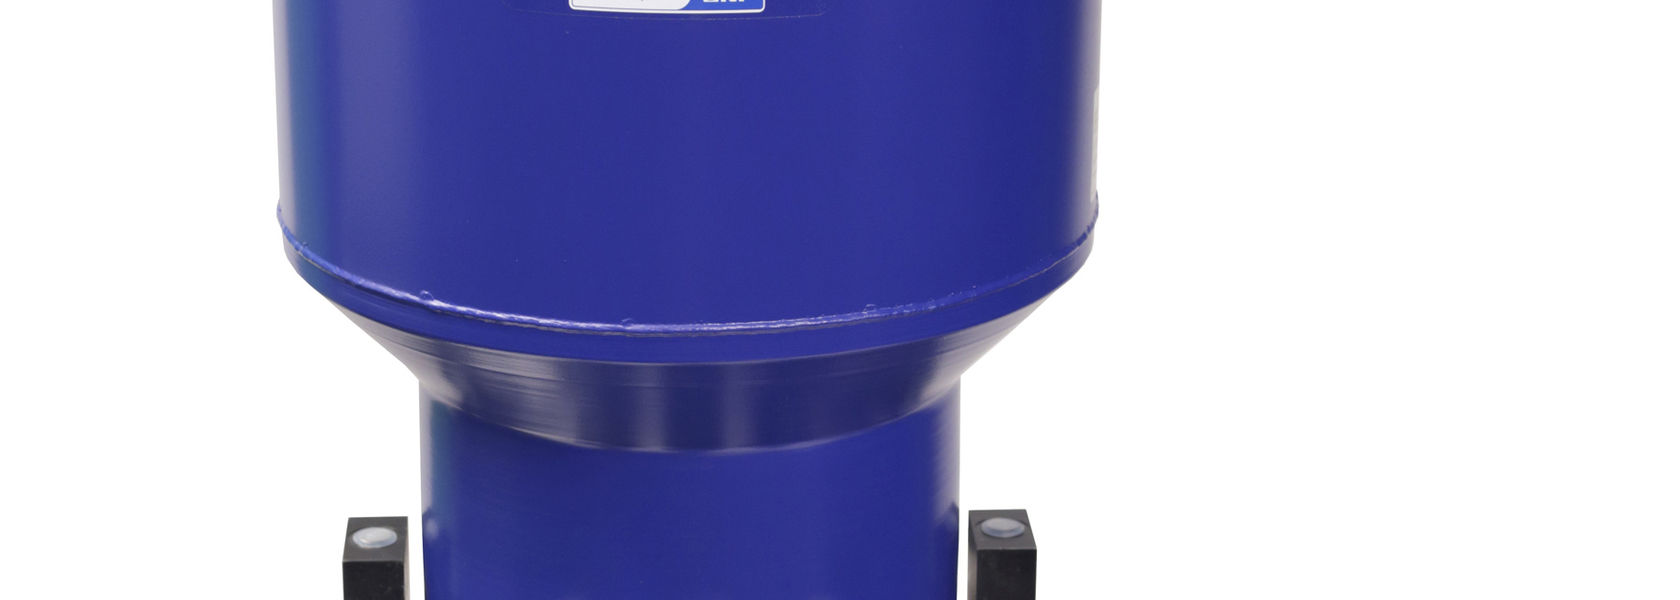 SKF offers new Lincoln pump